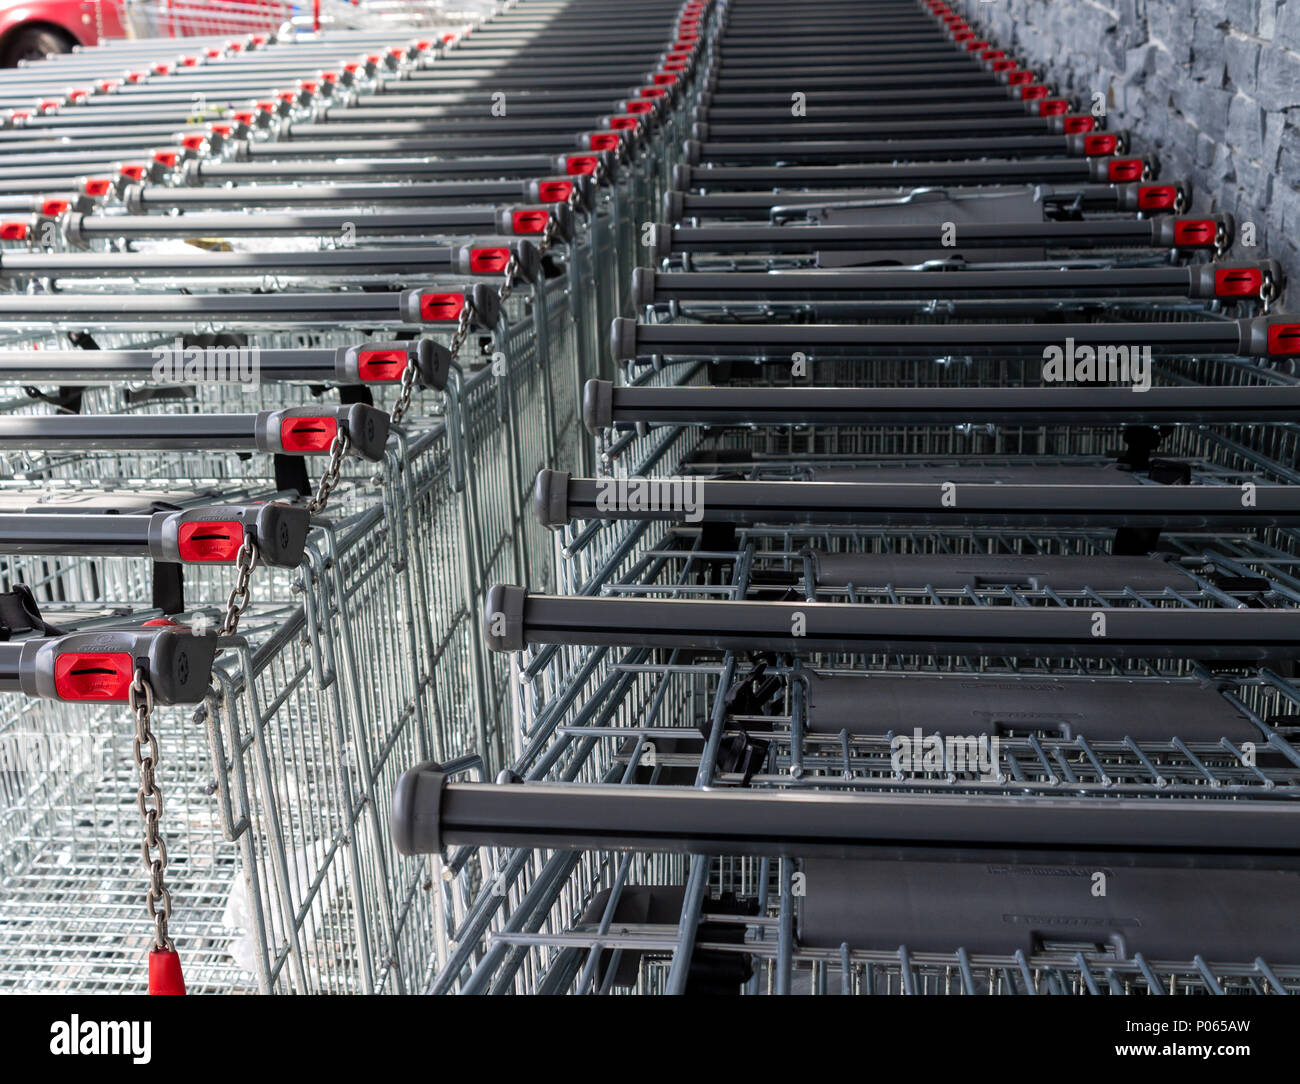 shopping-trolleys-coin-operated-stacked-outside-a-supermarket-or-food-retail-outlet-P065AW.jpg